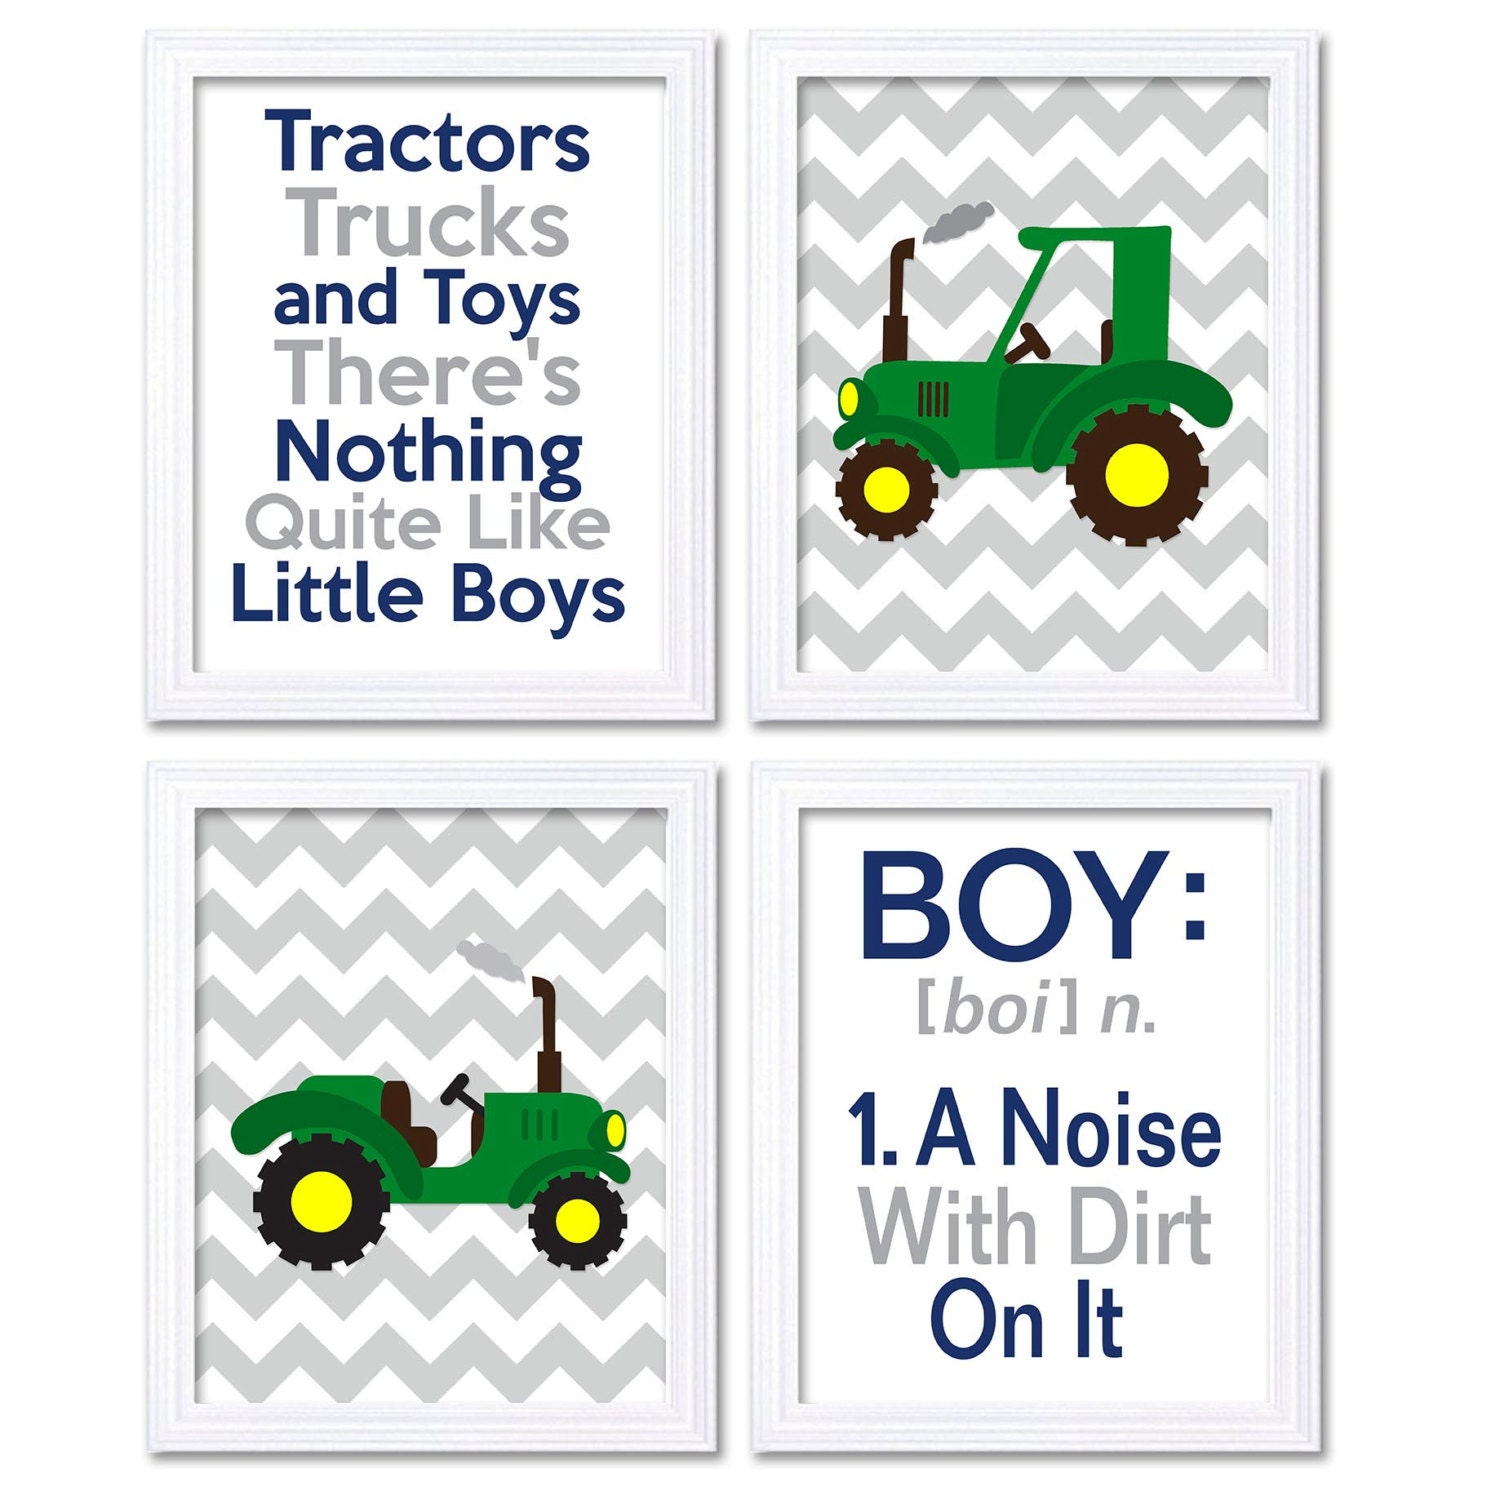 Nursery Art Tractors Trucks Toys Theres Nothing Quite Like Little Boys Set of 4 Prints Green Yellow